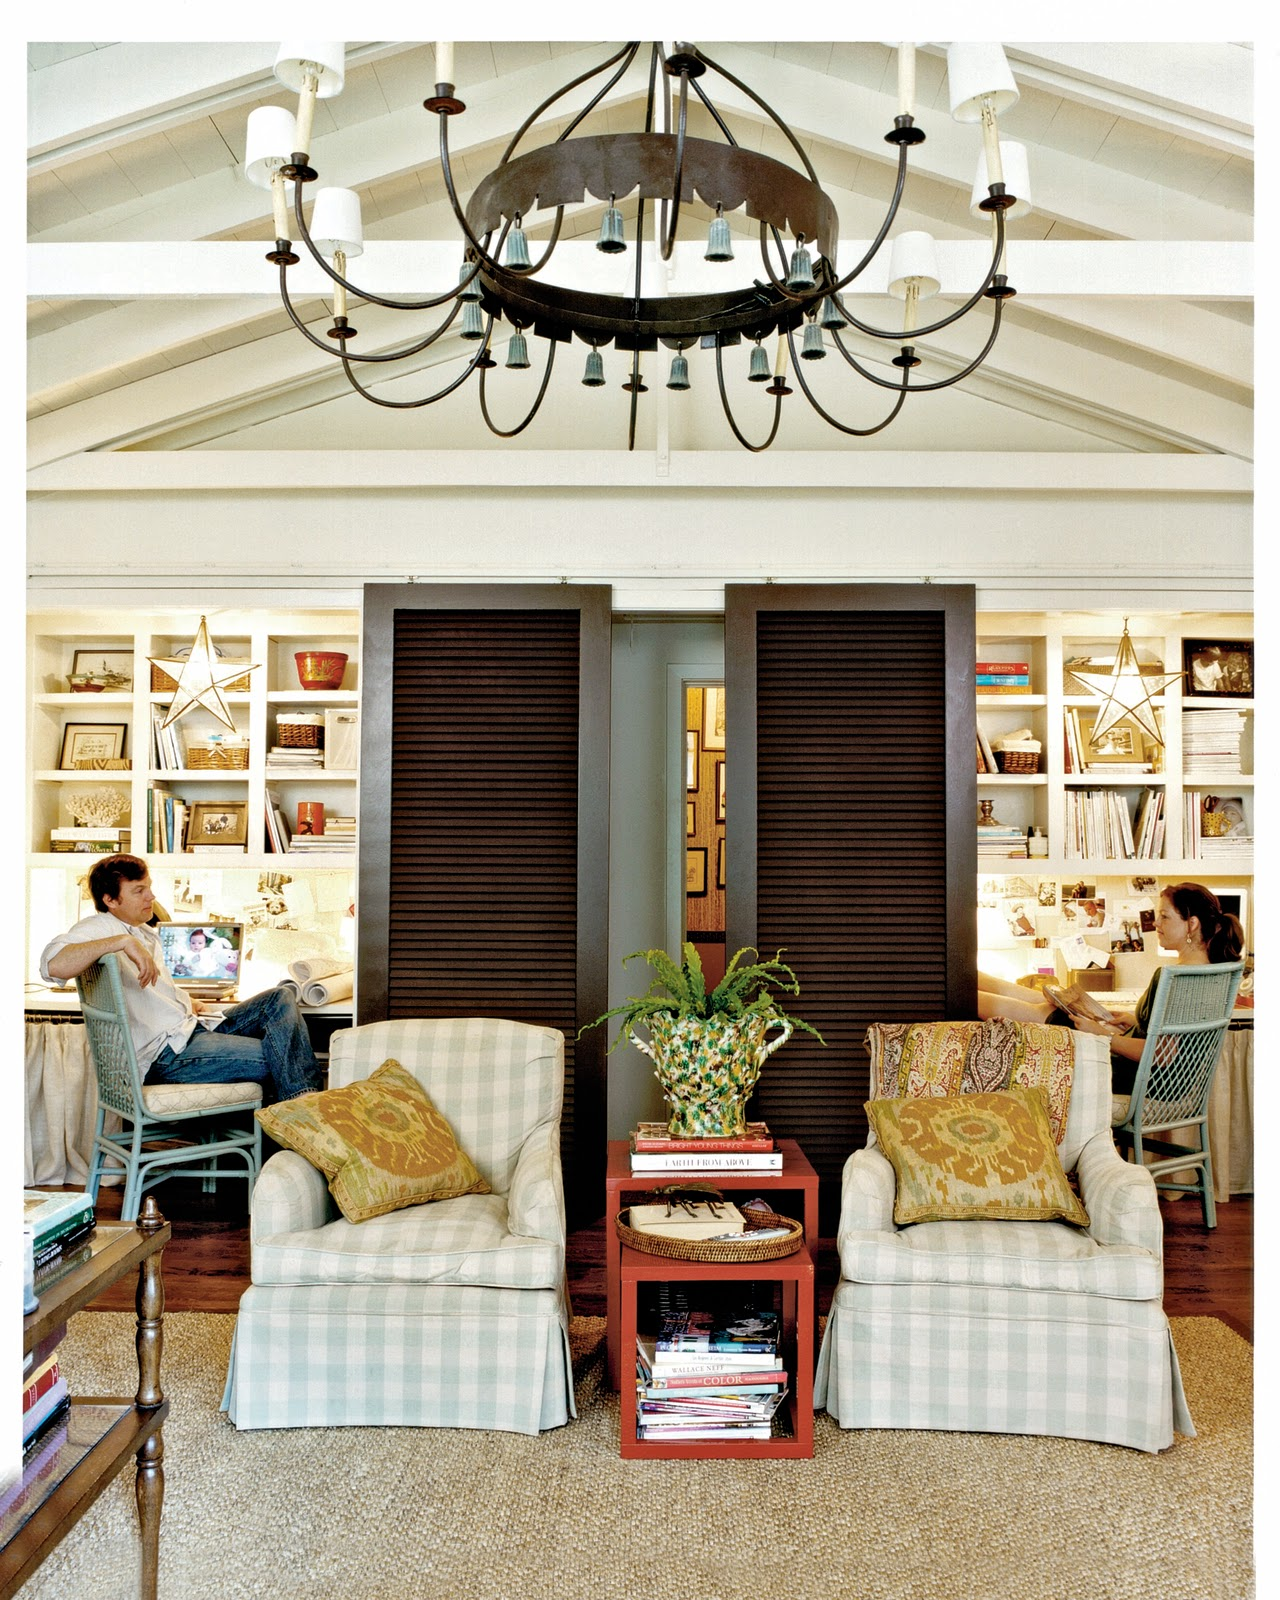 Living Room Southern Living Style the shabby nest southern living style is a great read for those like me obsessed with design and interested in how designers featured put particular rooms